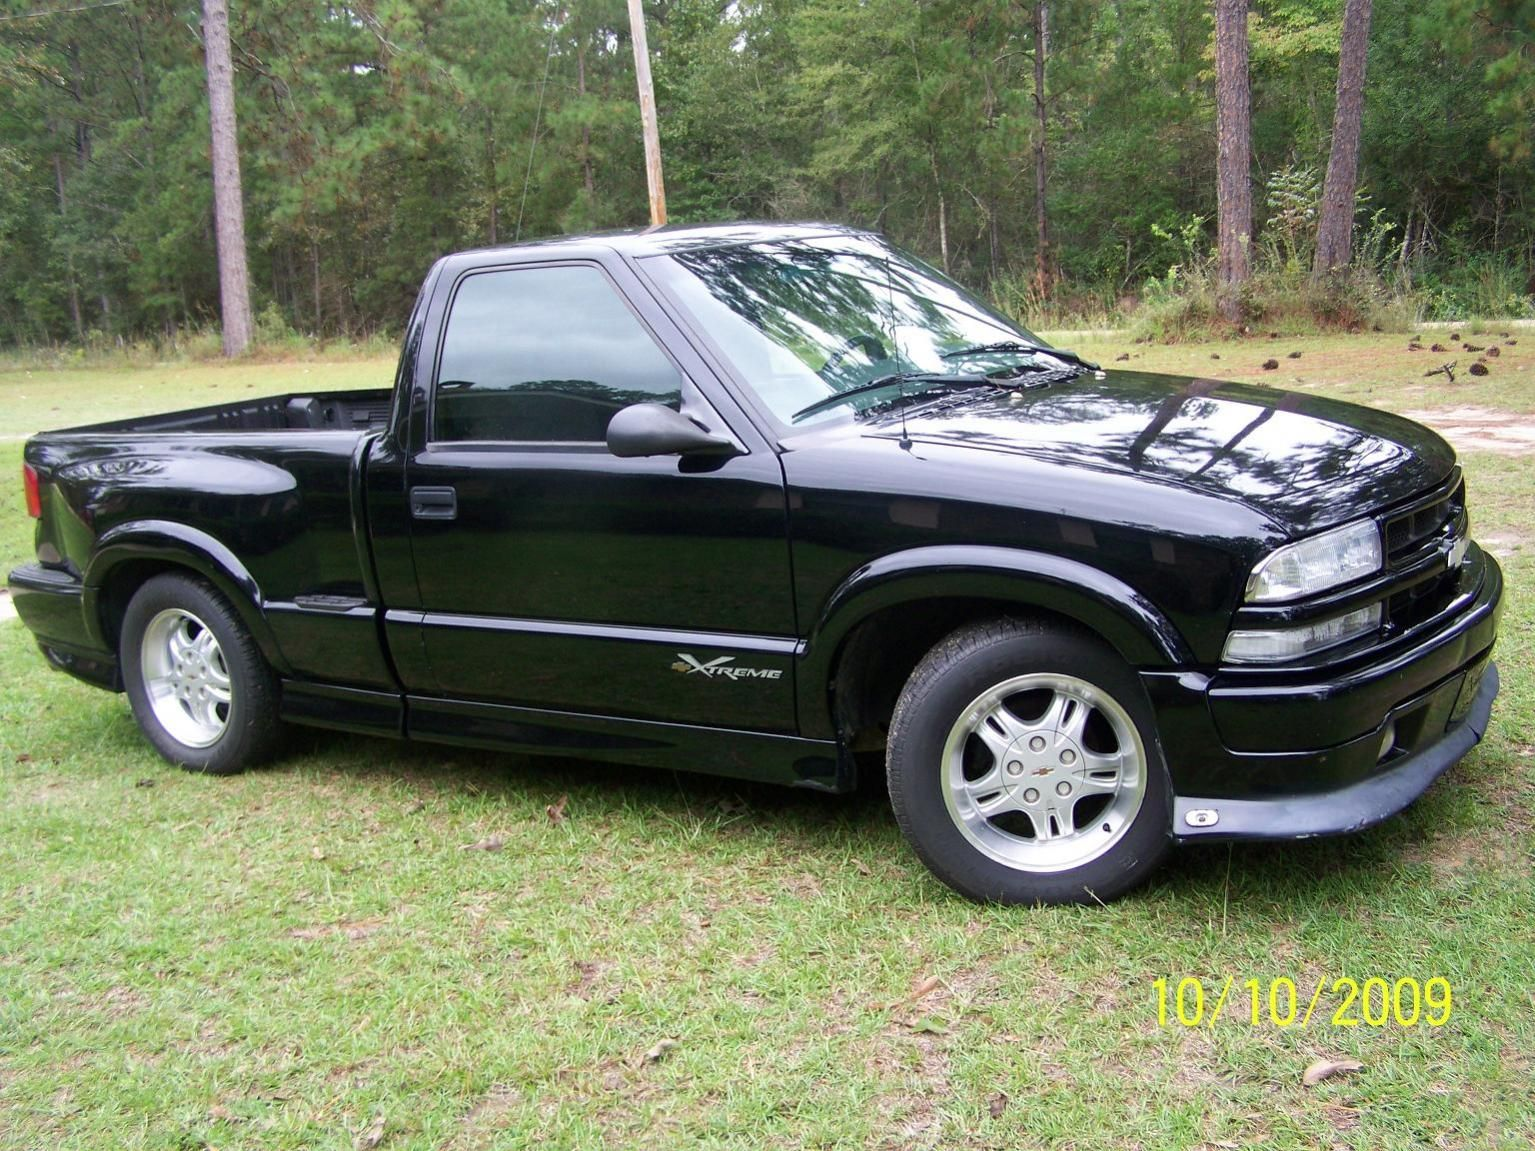 All Chevy 2003 chevy s10 sale : Chevrolet S10 Xtreme | Chevy S-10 Pickups | Pinterest | Chevrolet ...